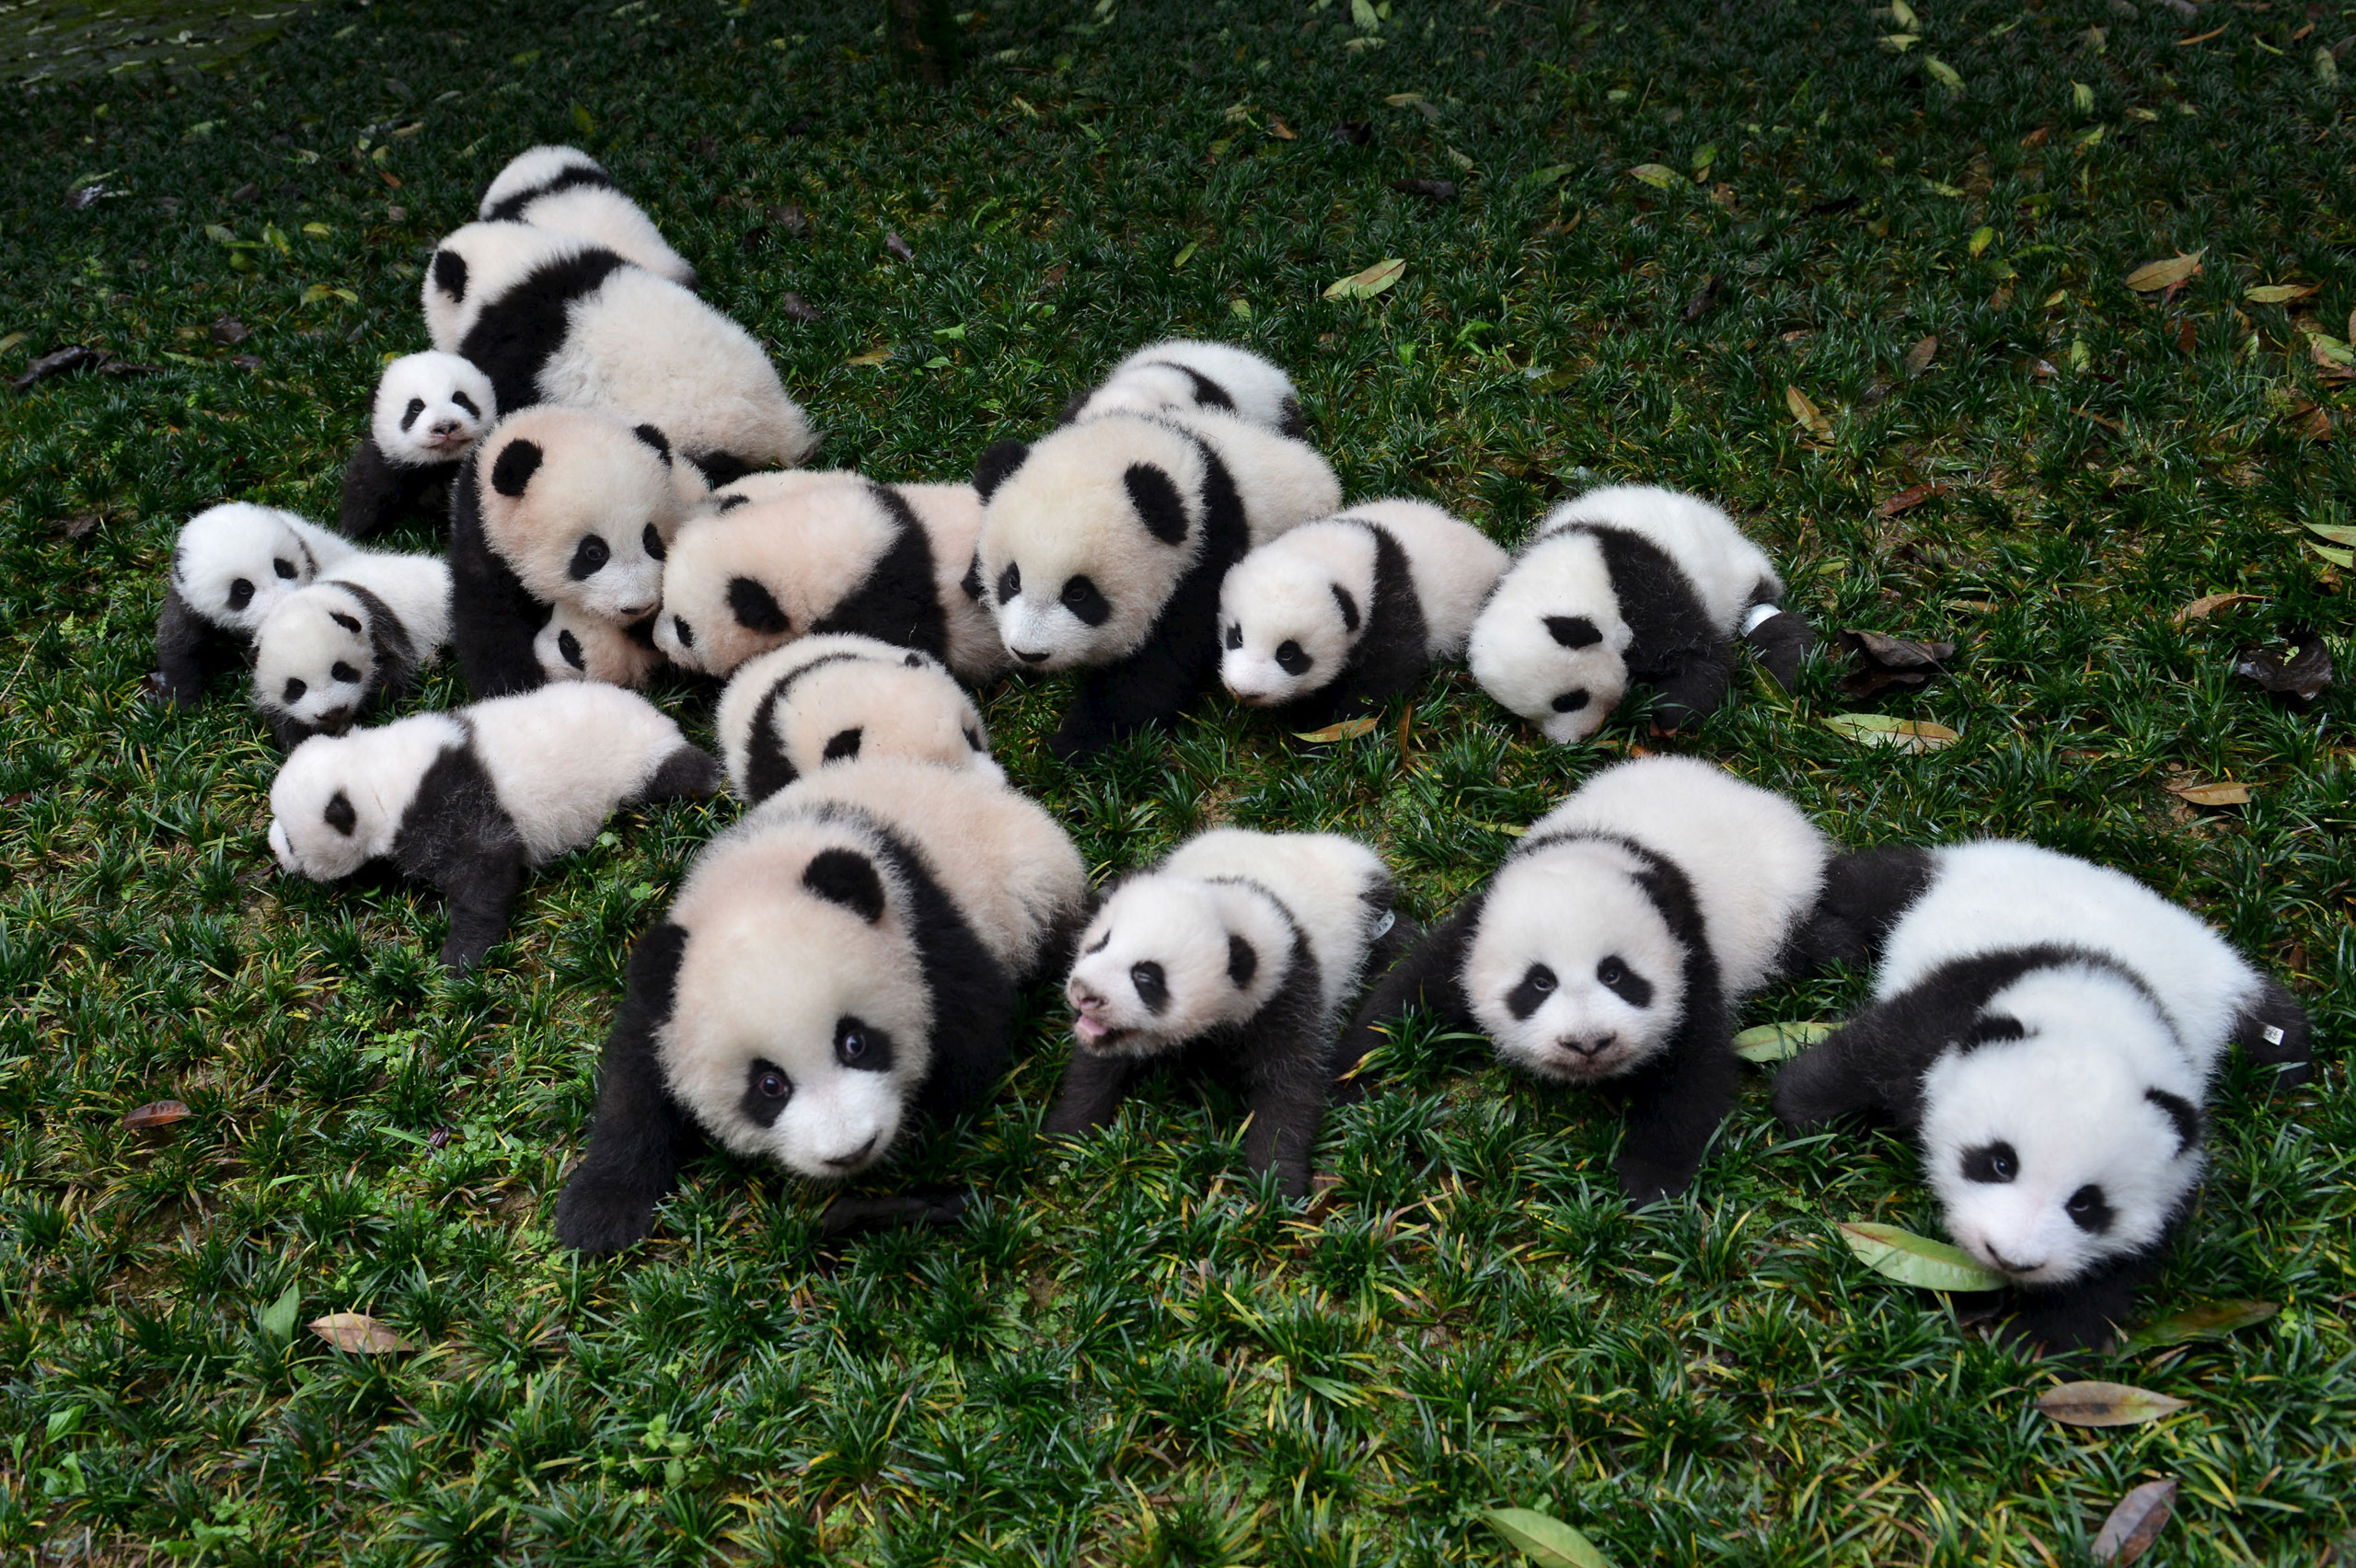 Baby pandas born in 2015 are placed on grass for pictures during a photo opportunity at a giant panda breeding centre in Ya'an, Sichuan province, China, Oct. 24, 2015.